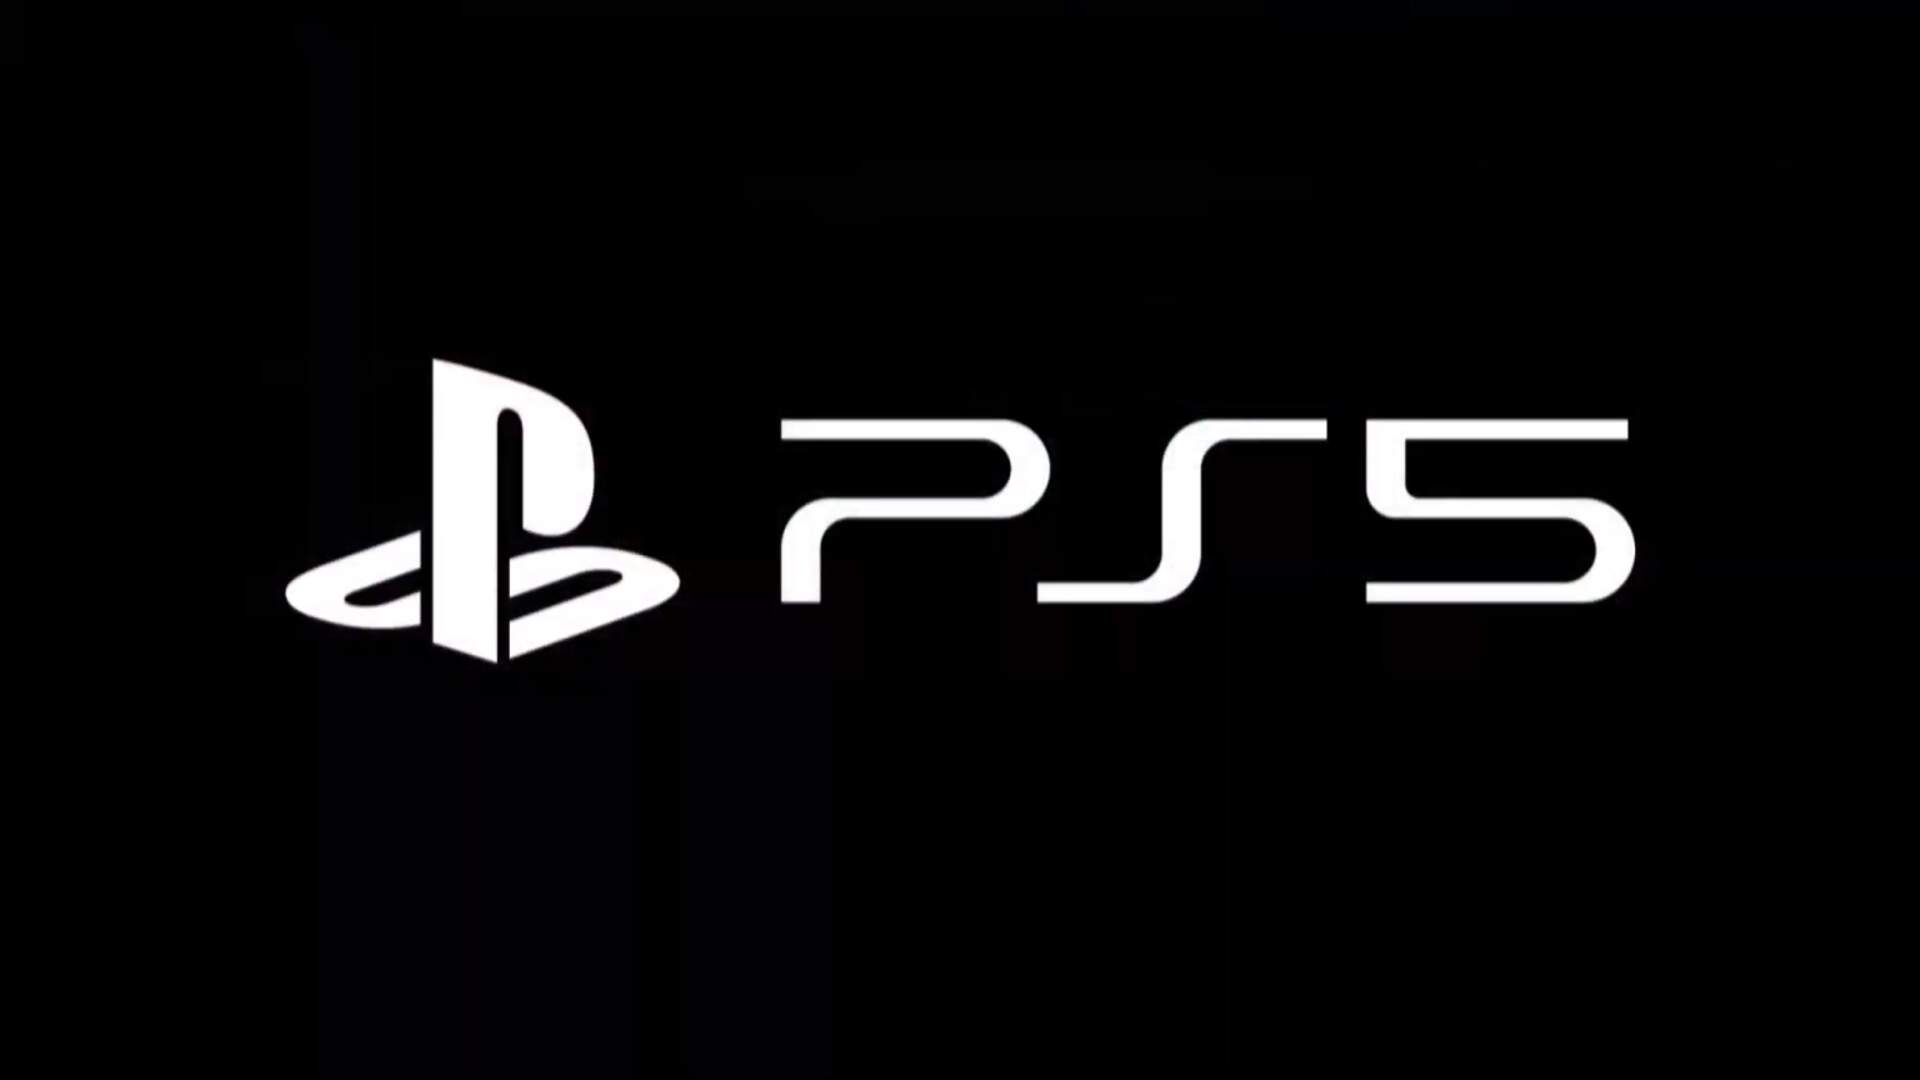 The PS5 Has a Site Now, so It's Time to Speculate About the Reveal Event That Will Seemingly Never Come